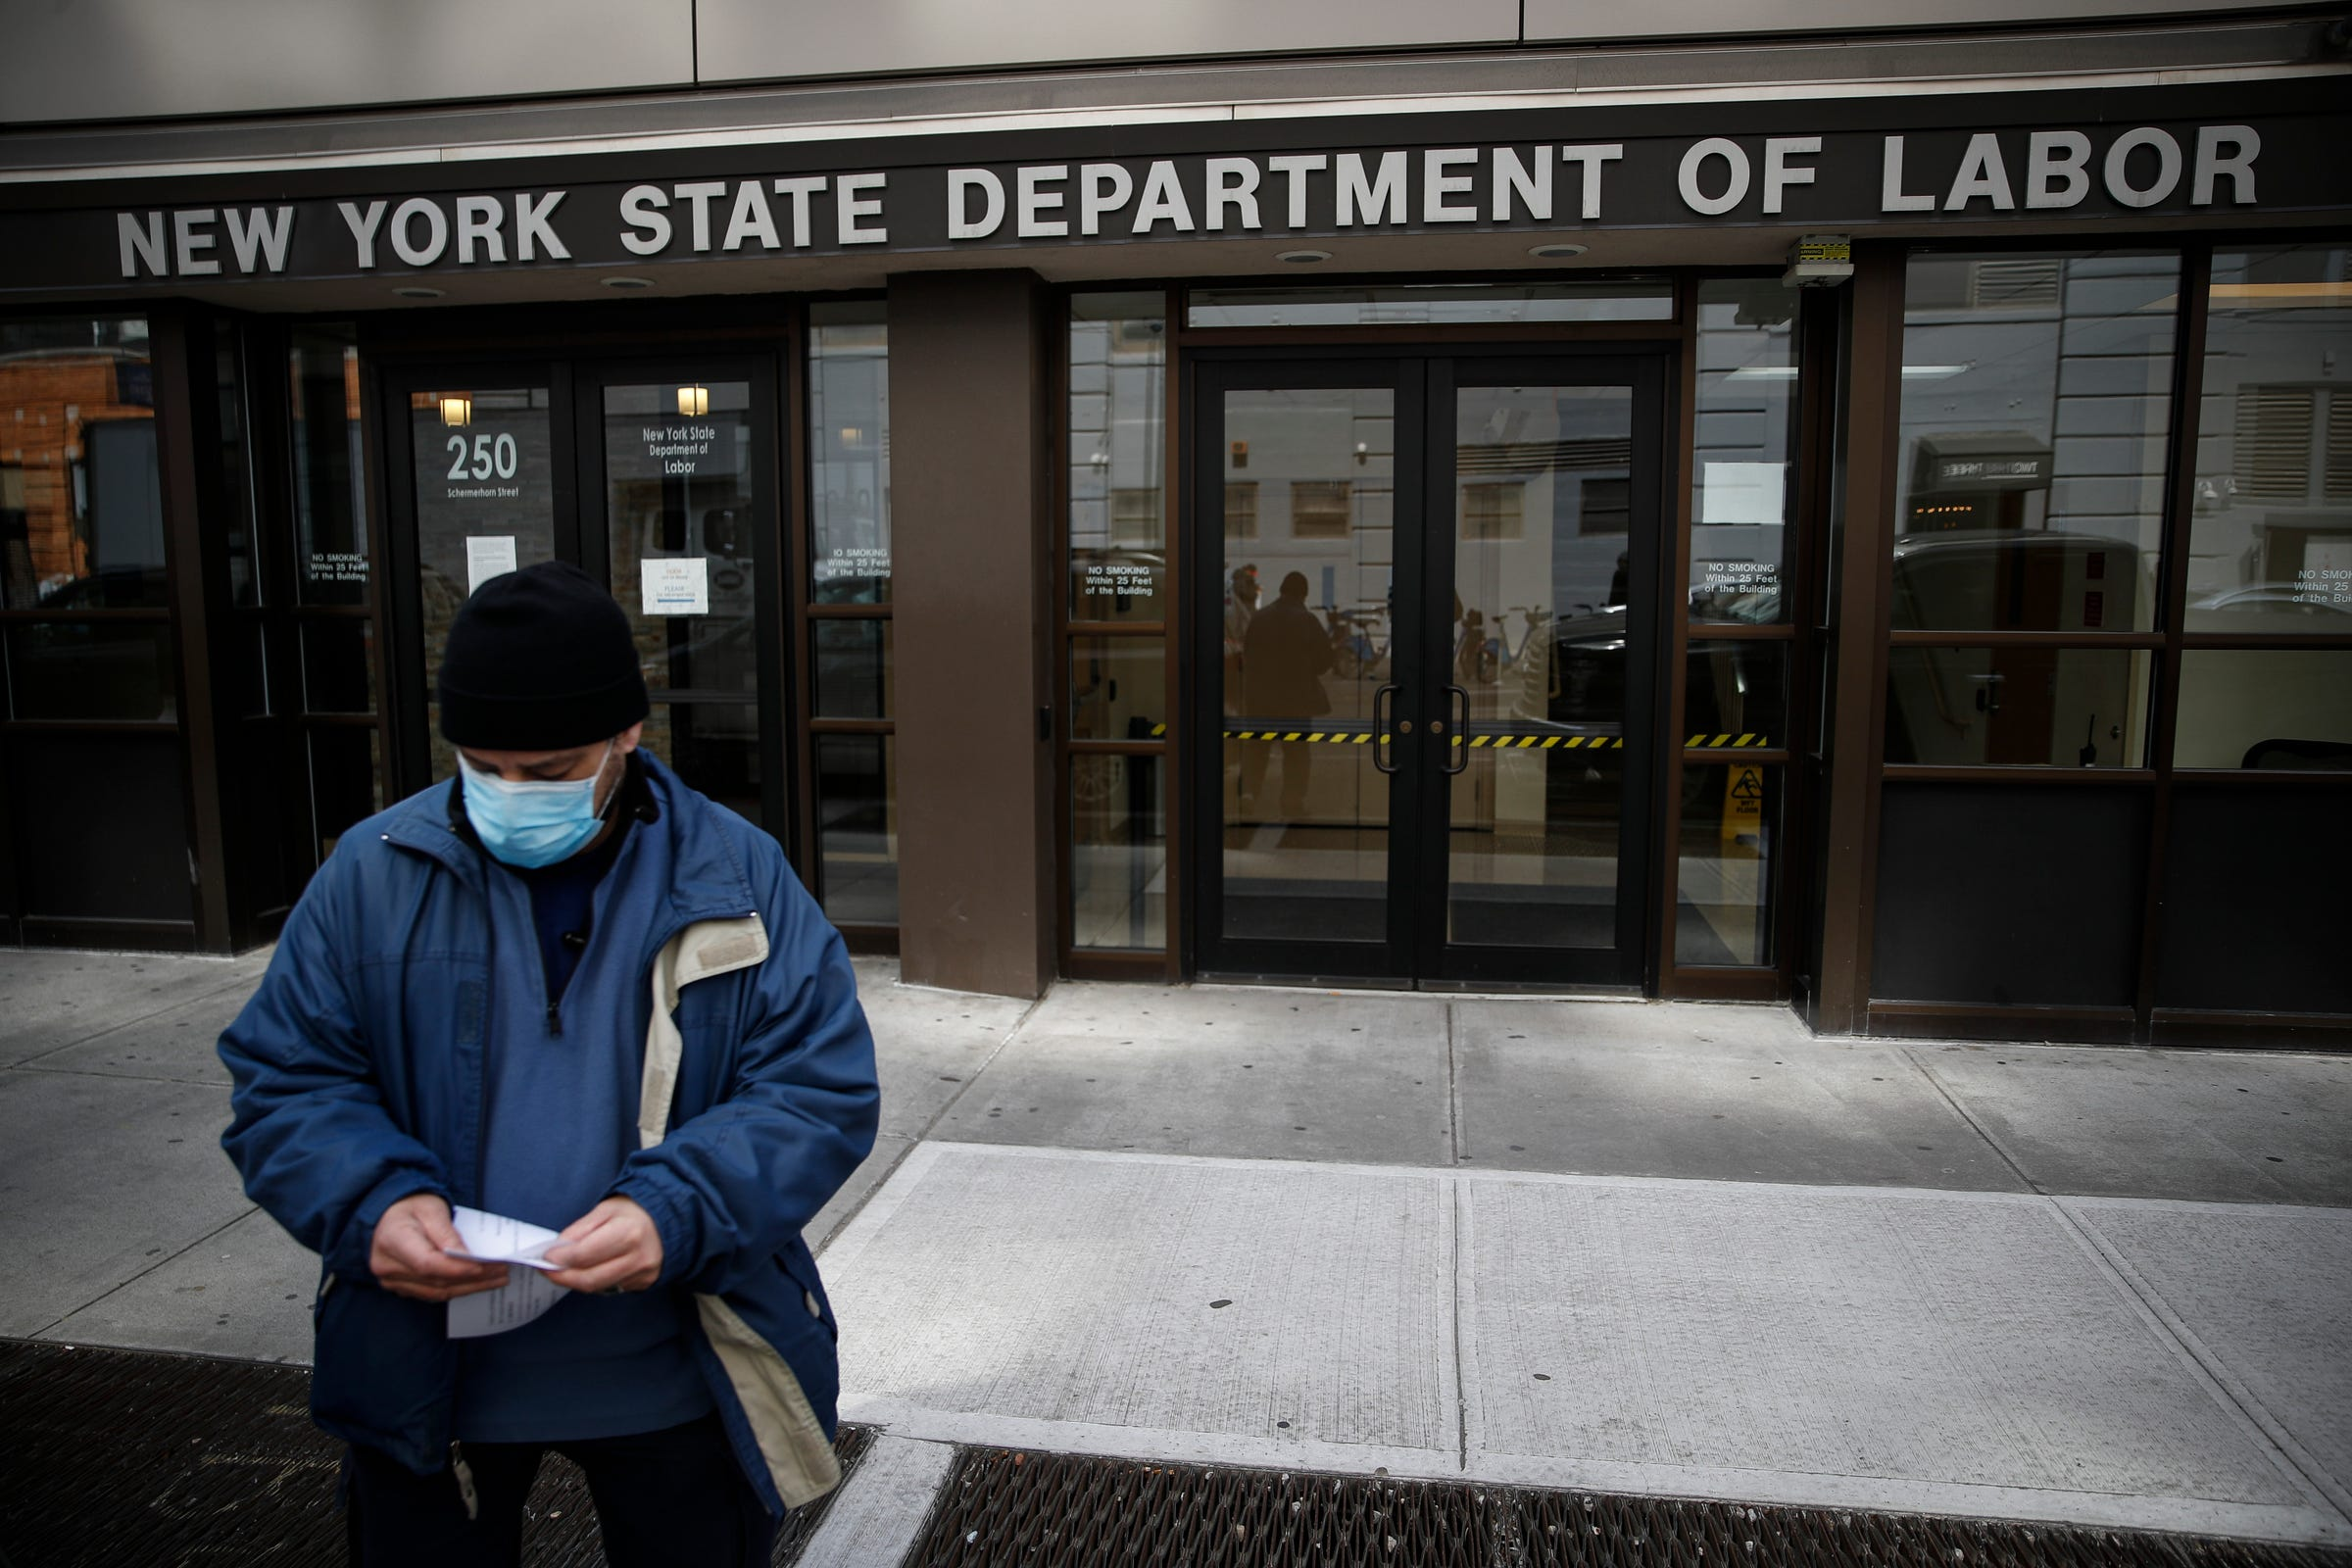 FILE - In this March 18, 2020 file photo, visitors to the Department of Labor are turned away at the door by personnel due to closures over coronavirus concerns. The coronavirus pandemic has already hurt many households financially. Americans have been hit with layoffs, furloughs and reduced hours across the country. Those who have not are still facing massive economic uncertainty. Experts say it's more important than ever to manage your budget, reach out to lenders and seek protections available to those hit by the economic impact of the virus. (AP Photo/John Minchillo, File)